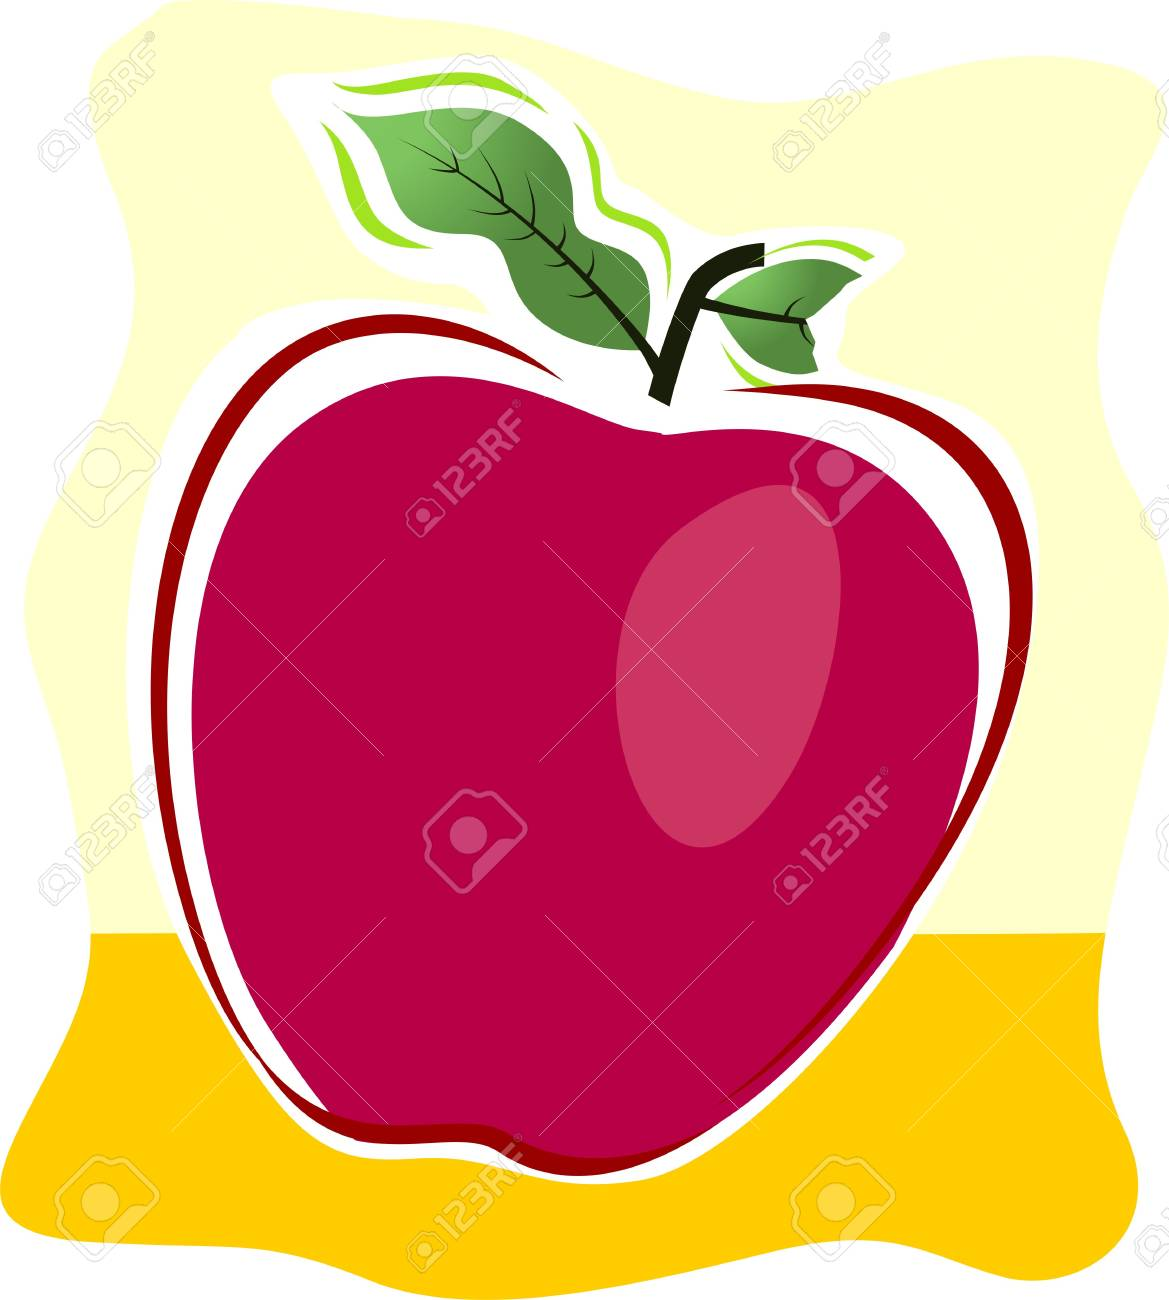 Illustration of an apple in a yellow shade back ground Stock Illustration - 4136381